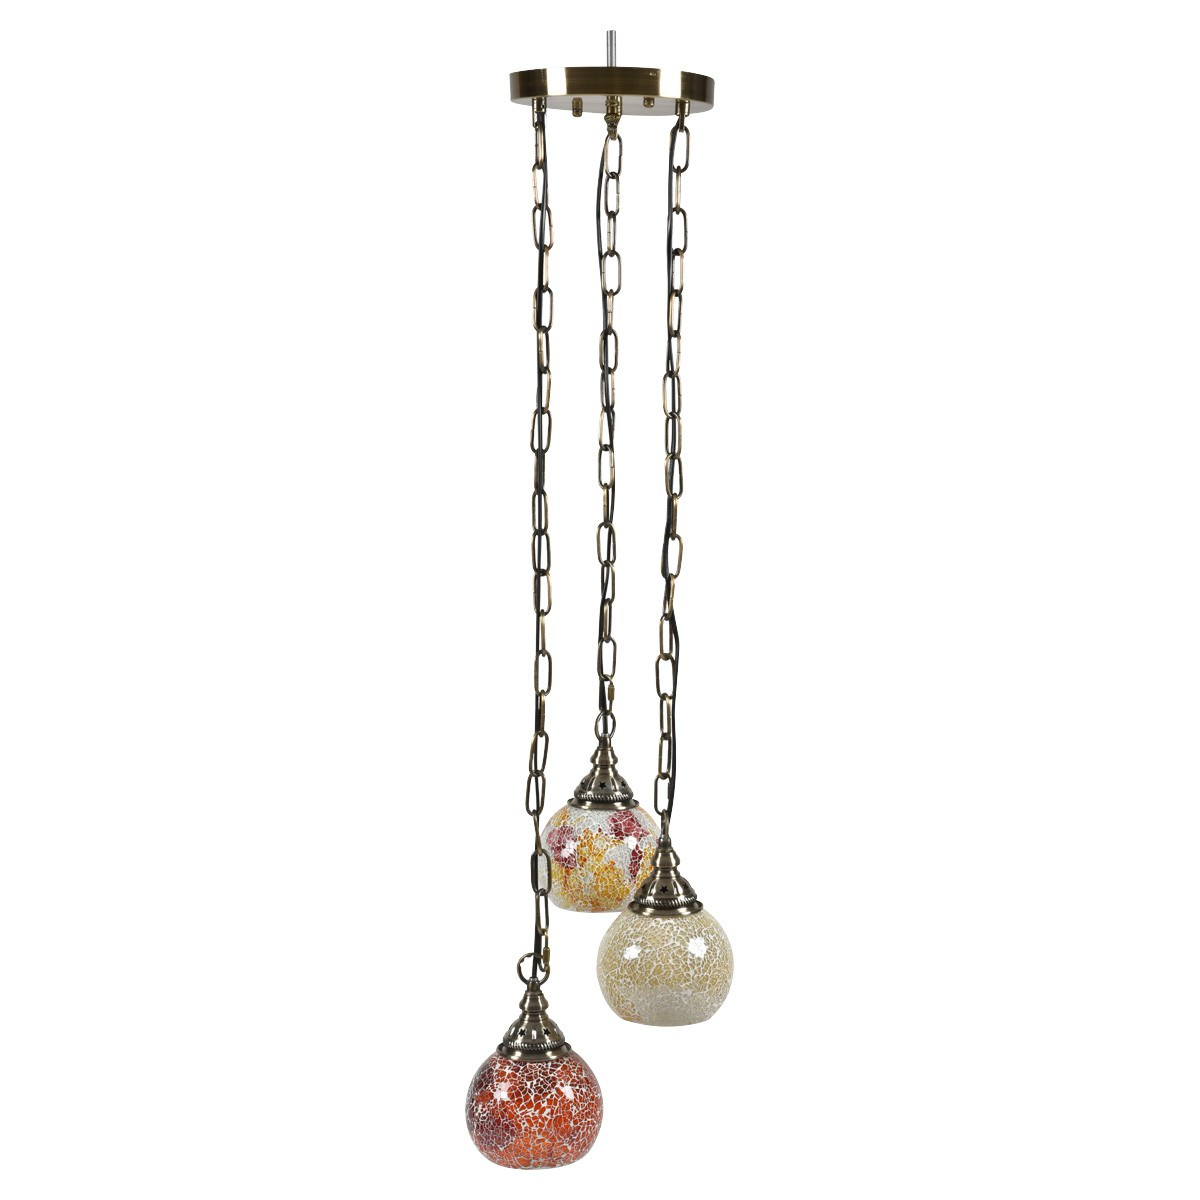 Amara Mosaic Glass Moroccan Cluster Pendant Light, Red Tone